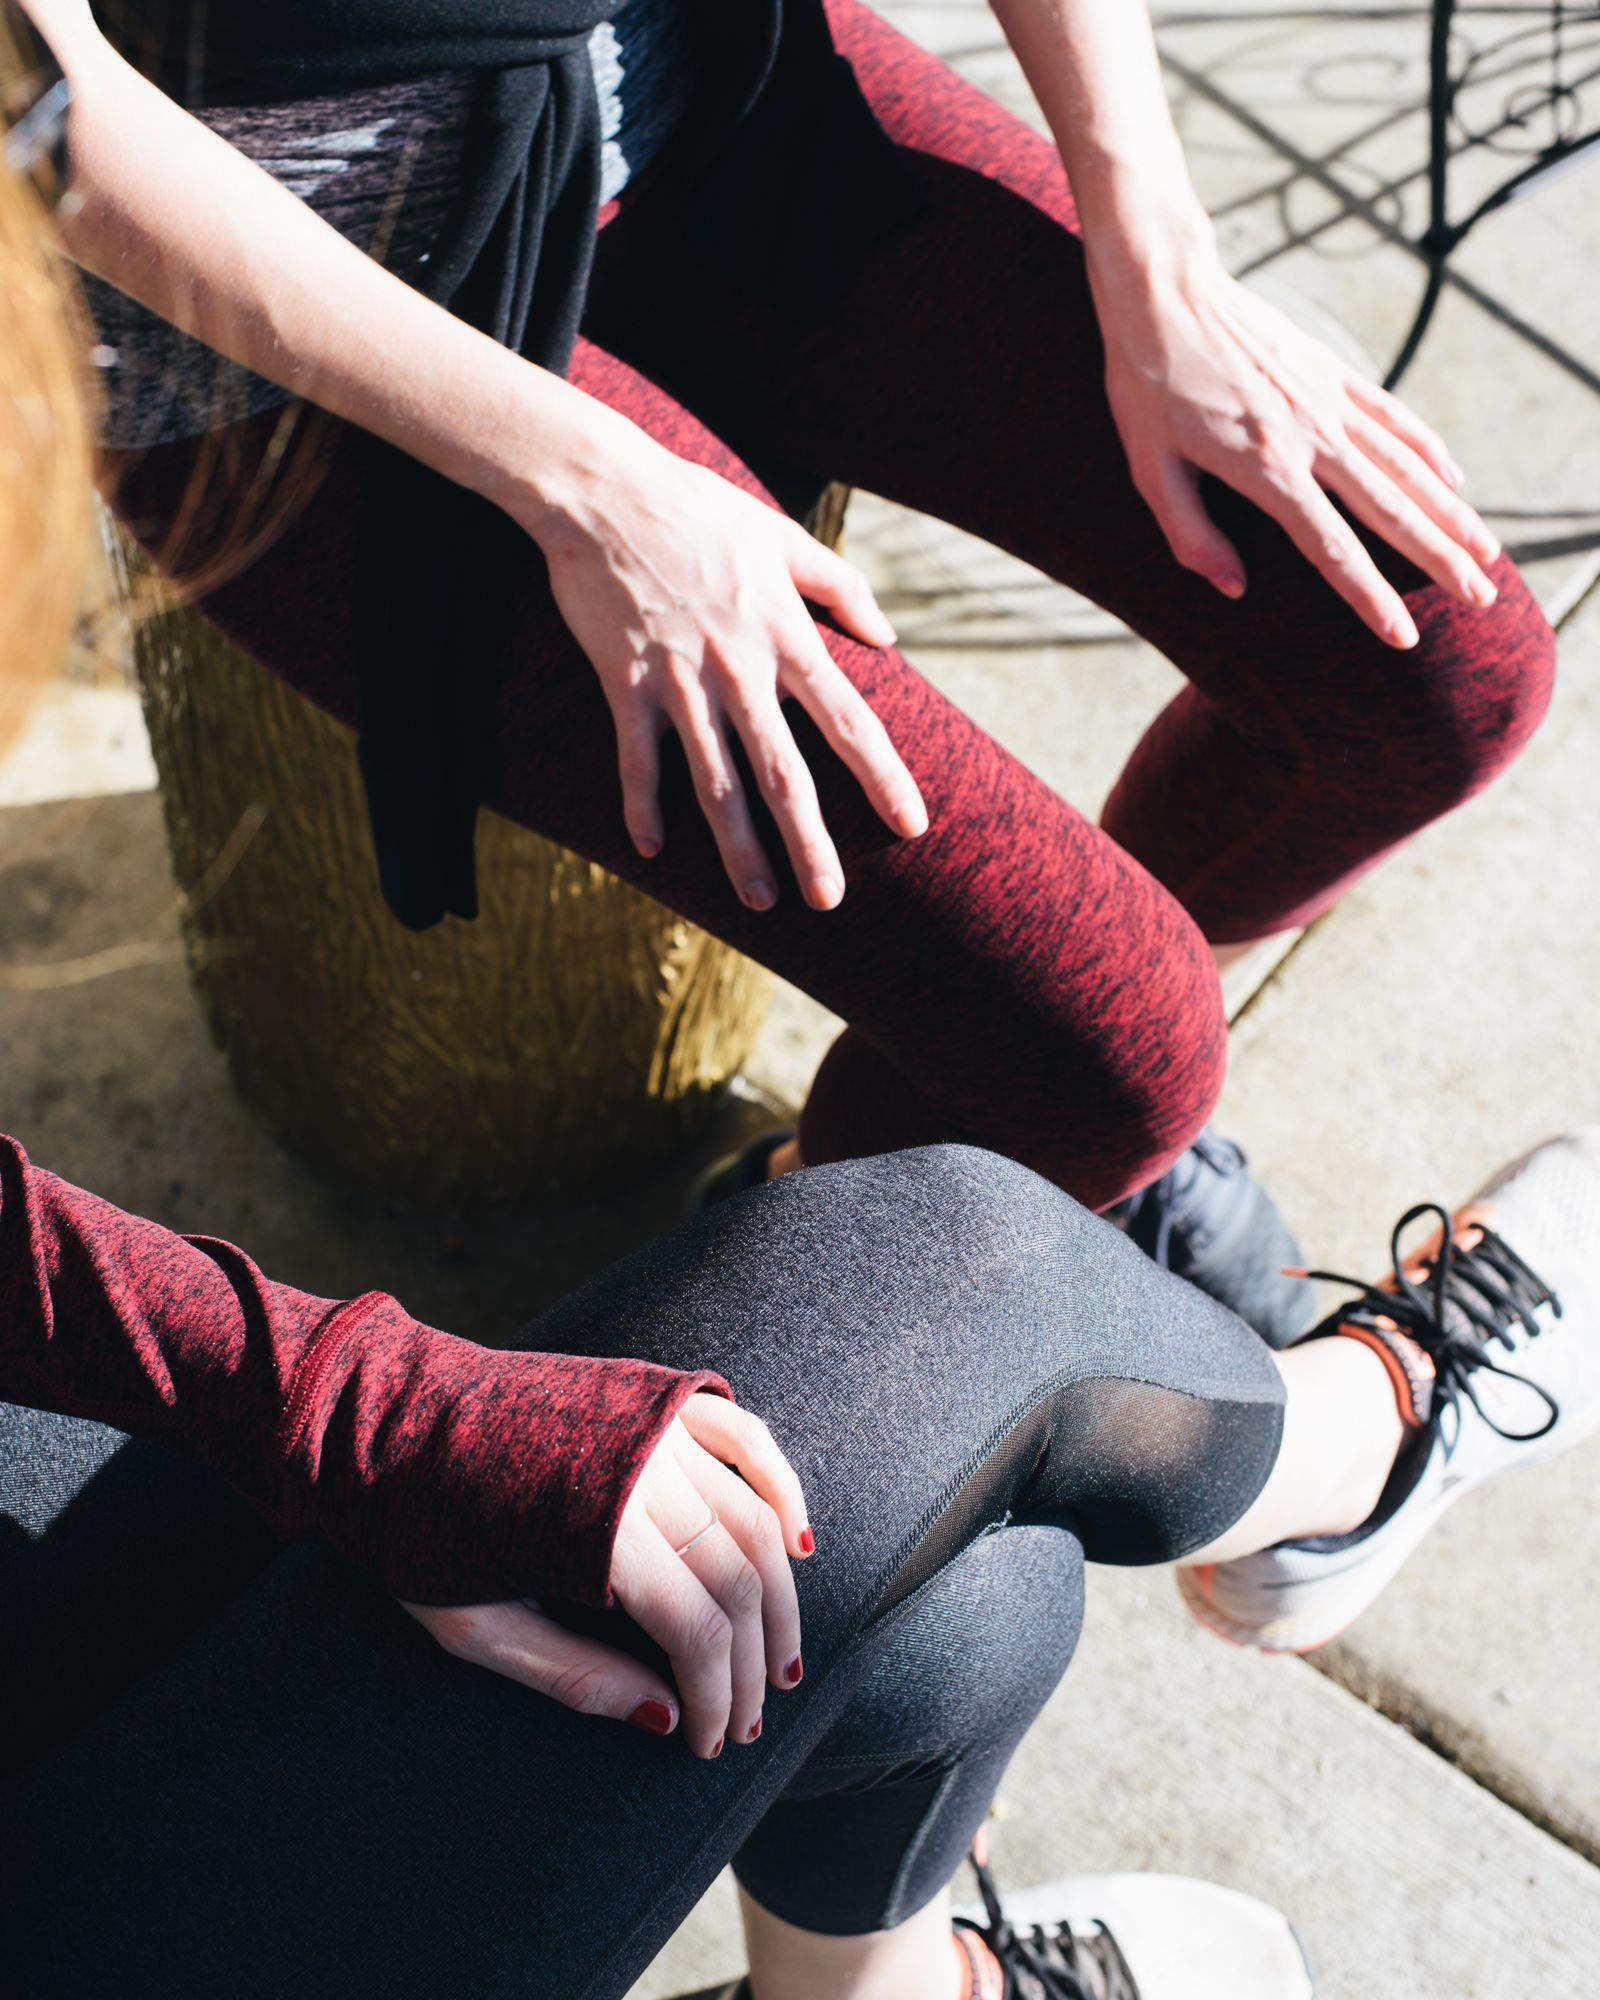 Beyond Yoga // Yoga // Leggings // Sneakers // Outerwear // Workout